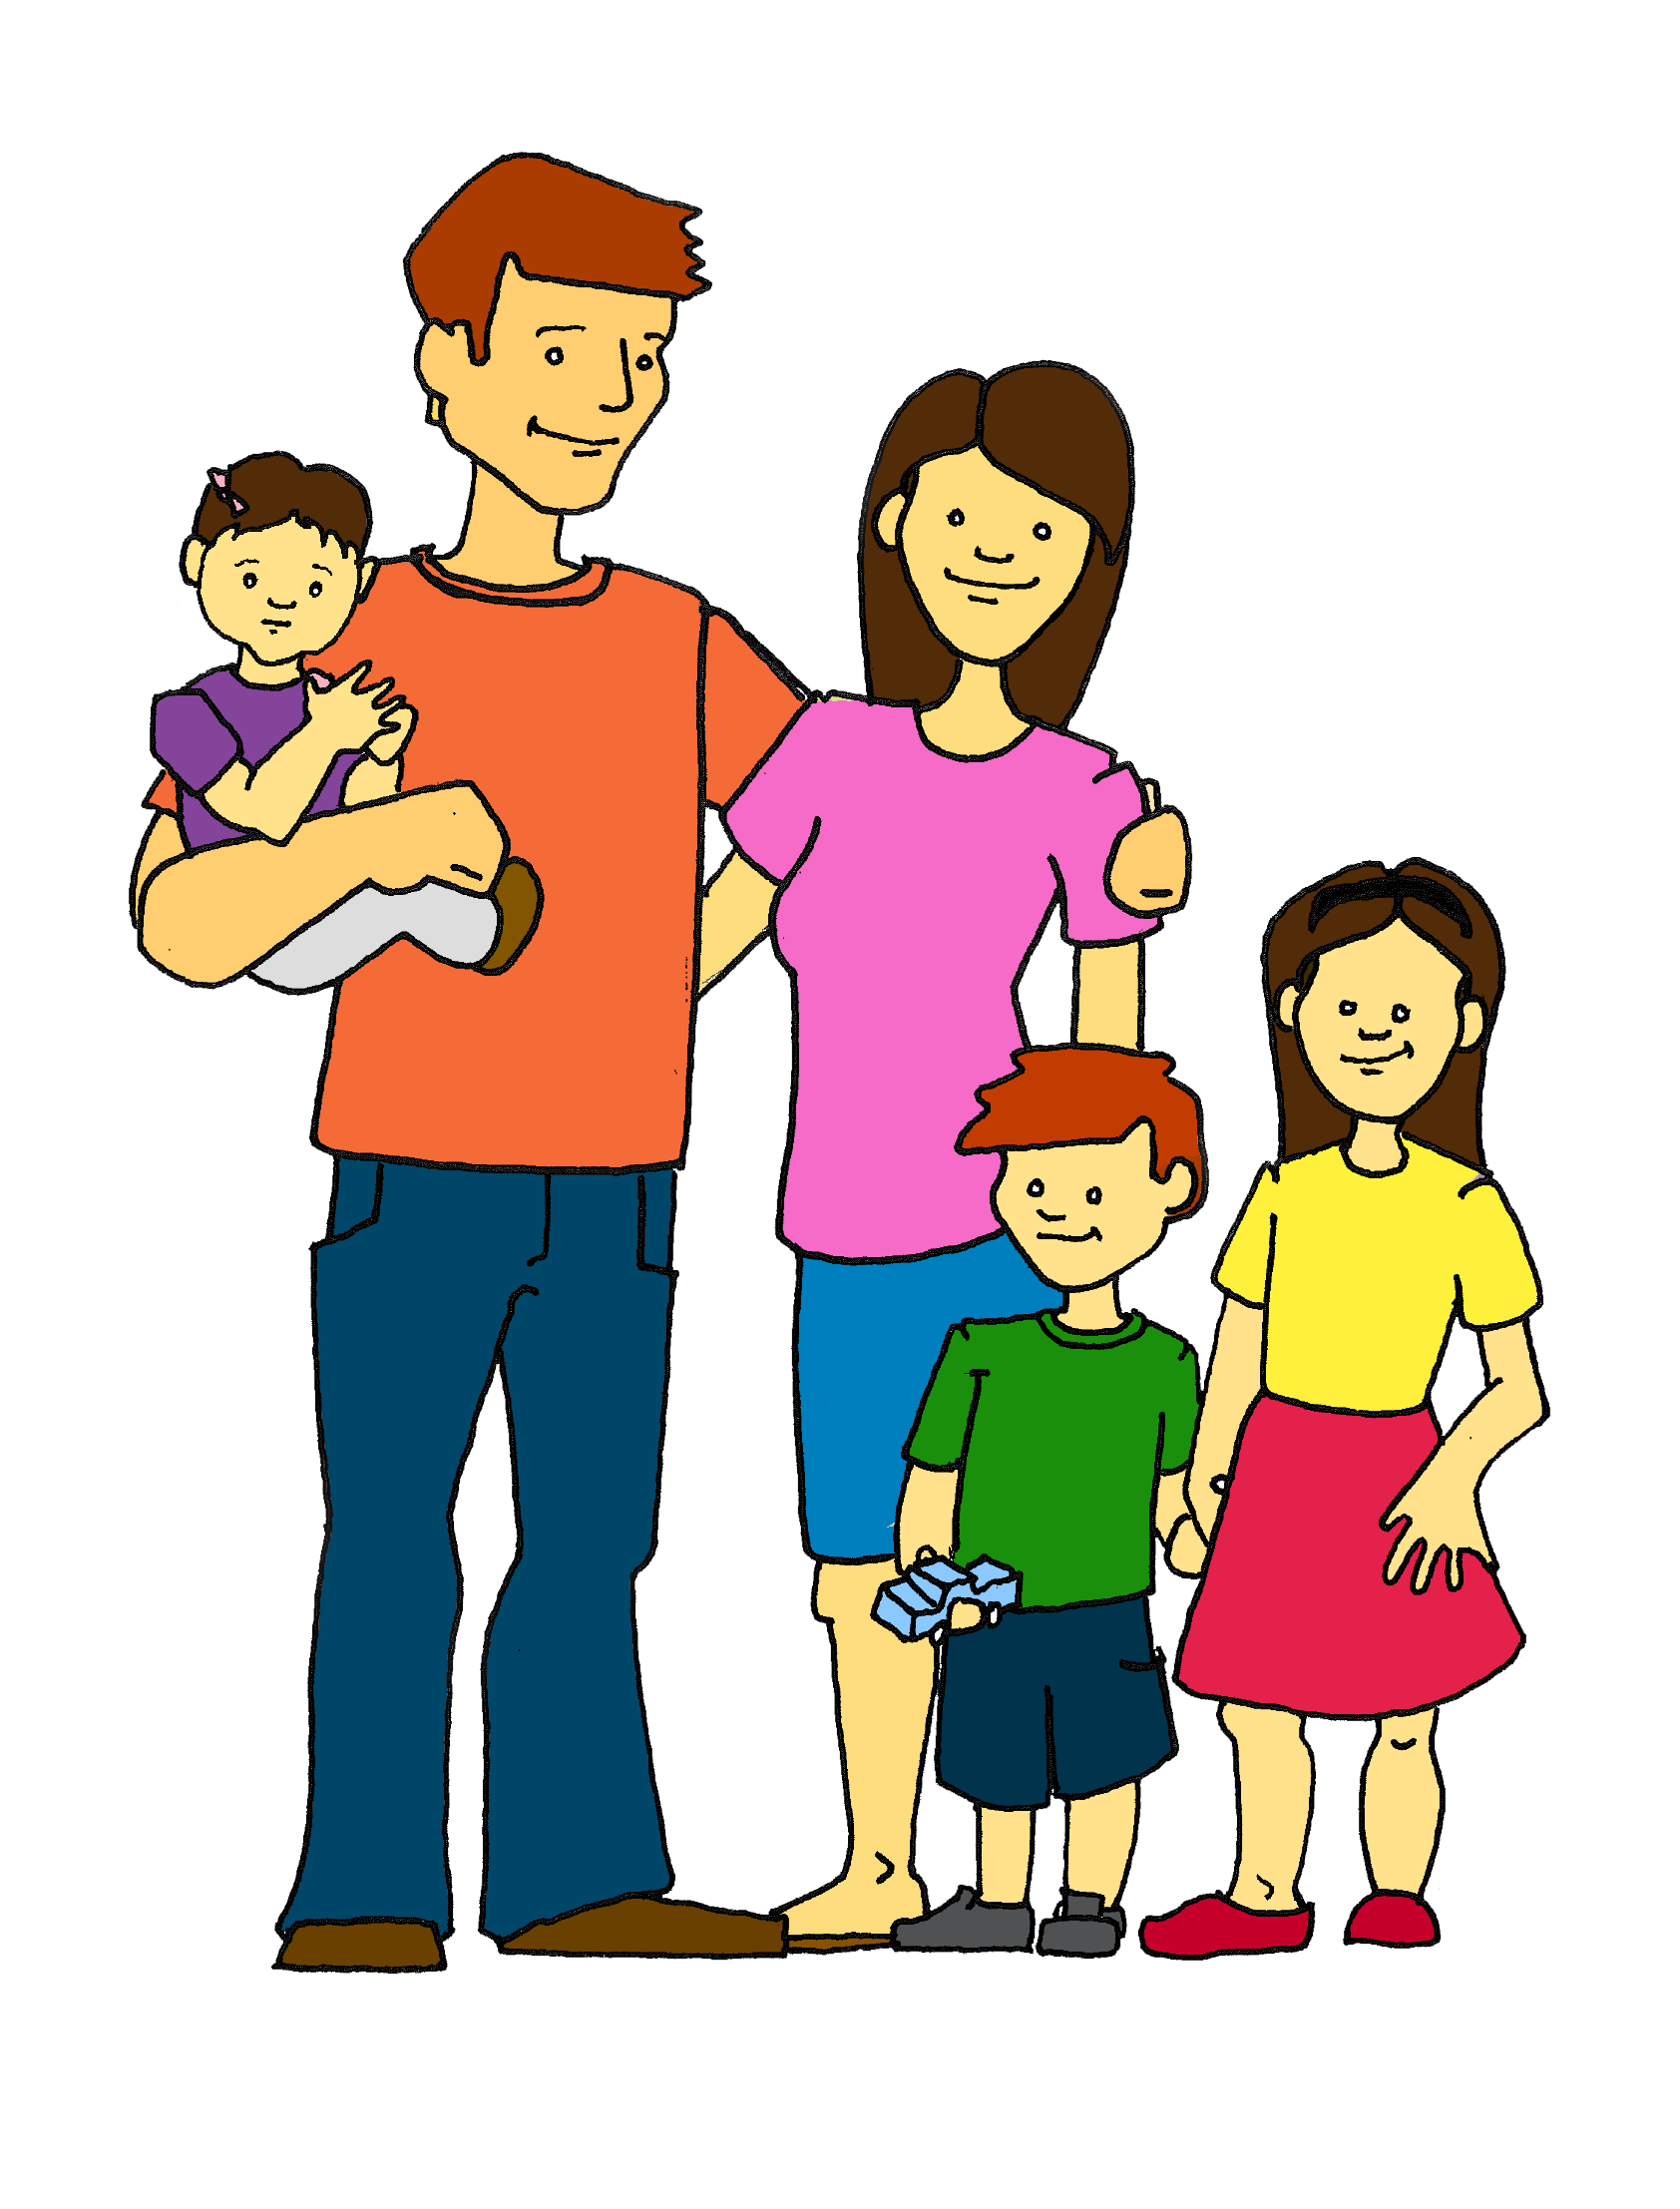 Poor clipart happy family. Free image of download